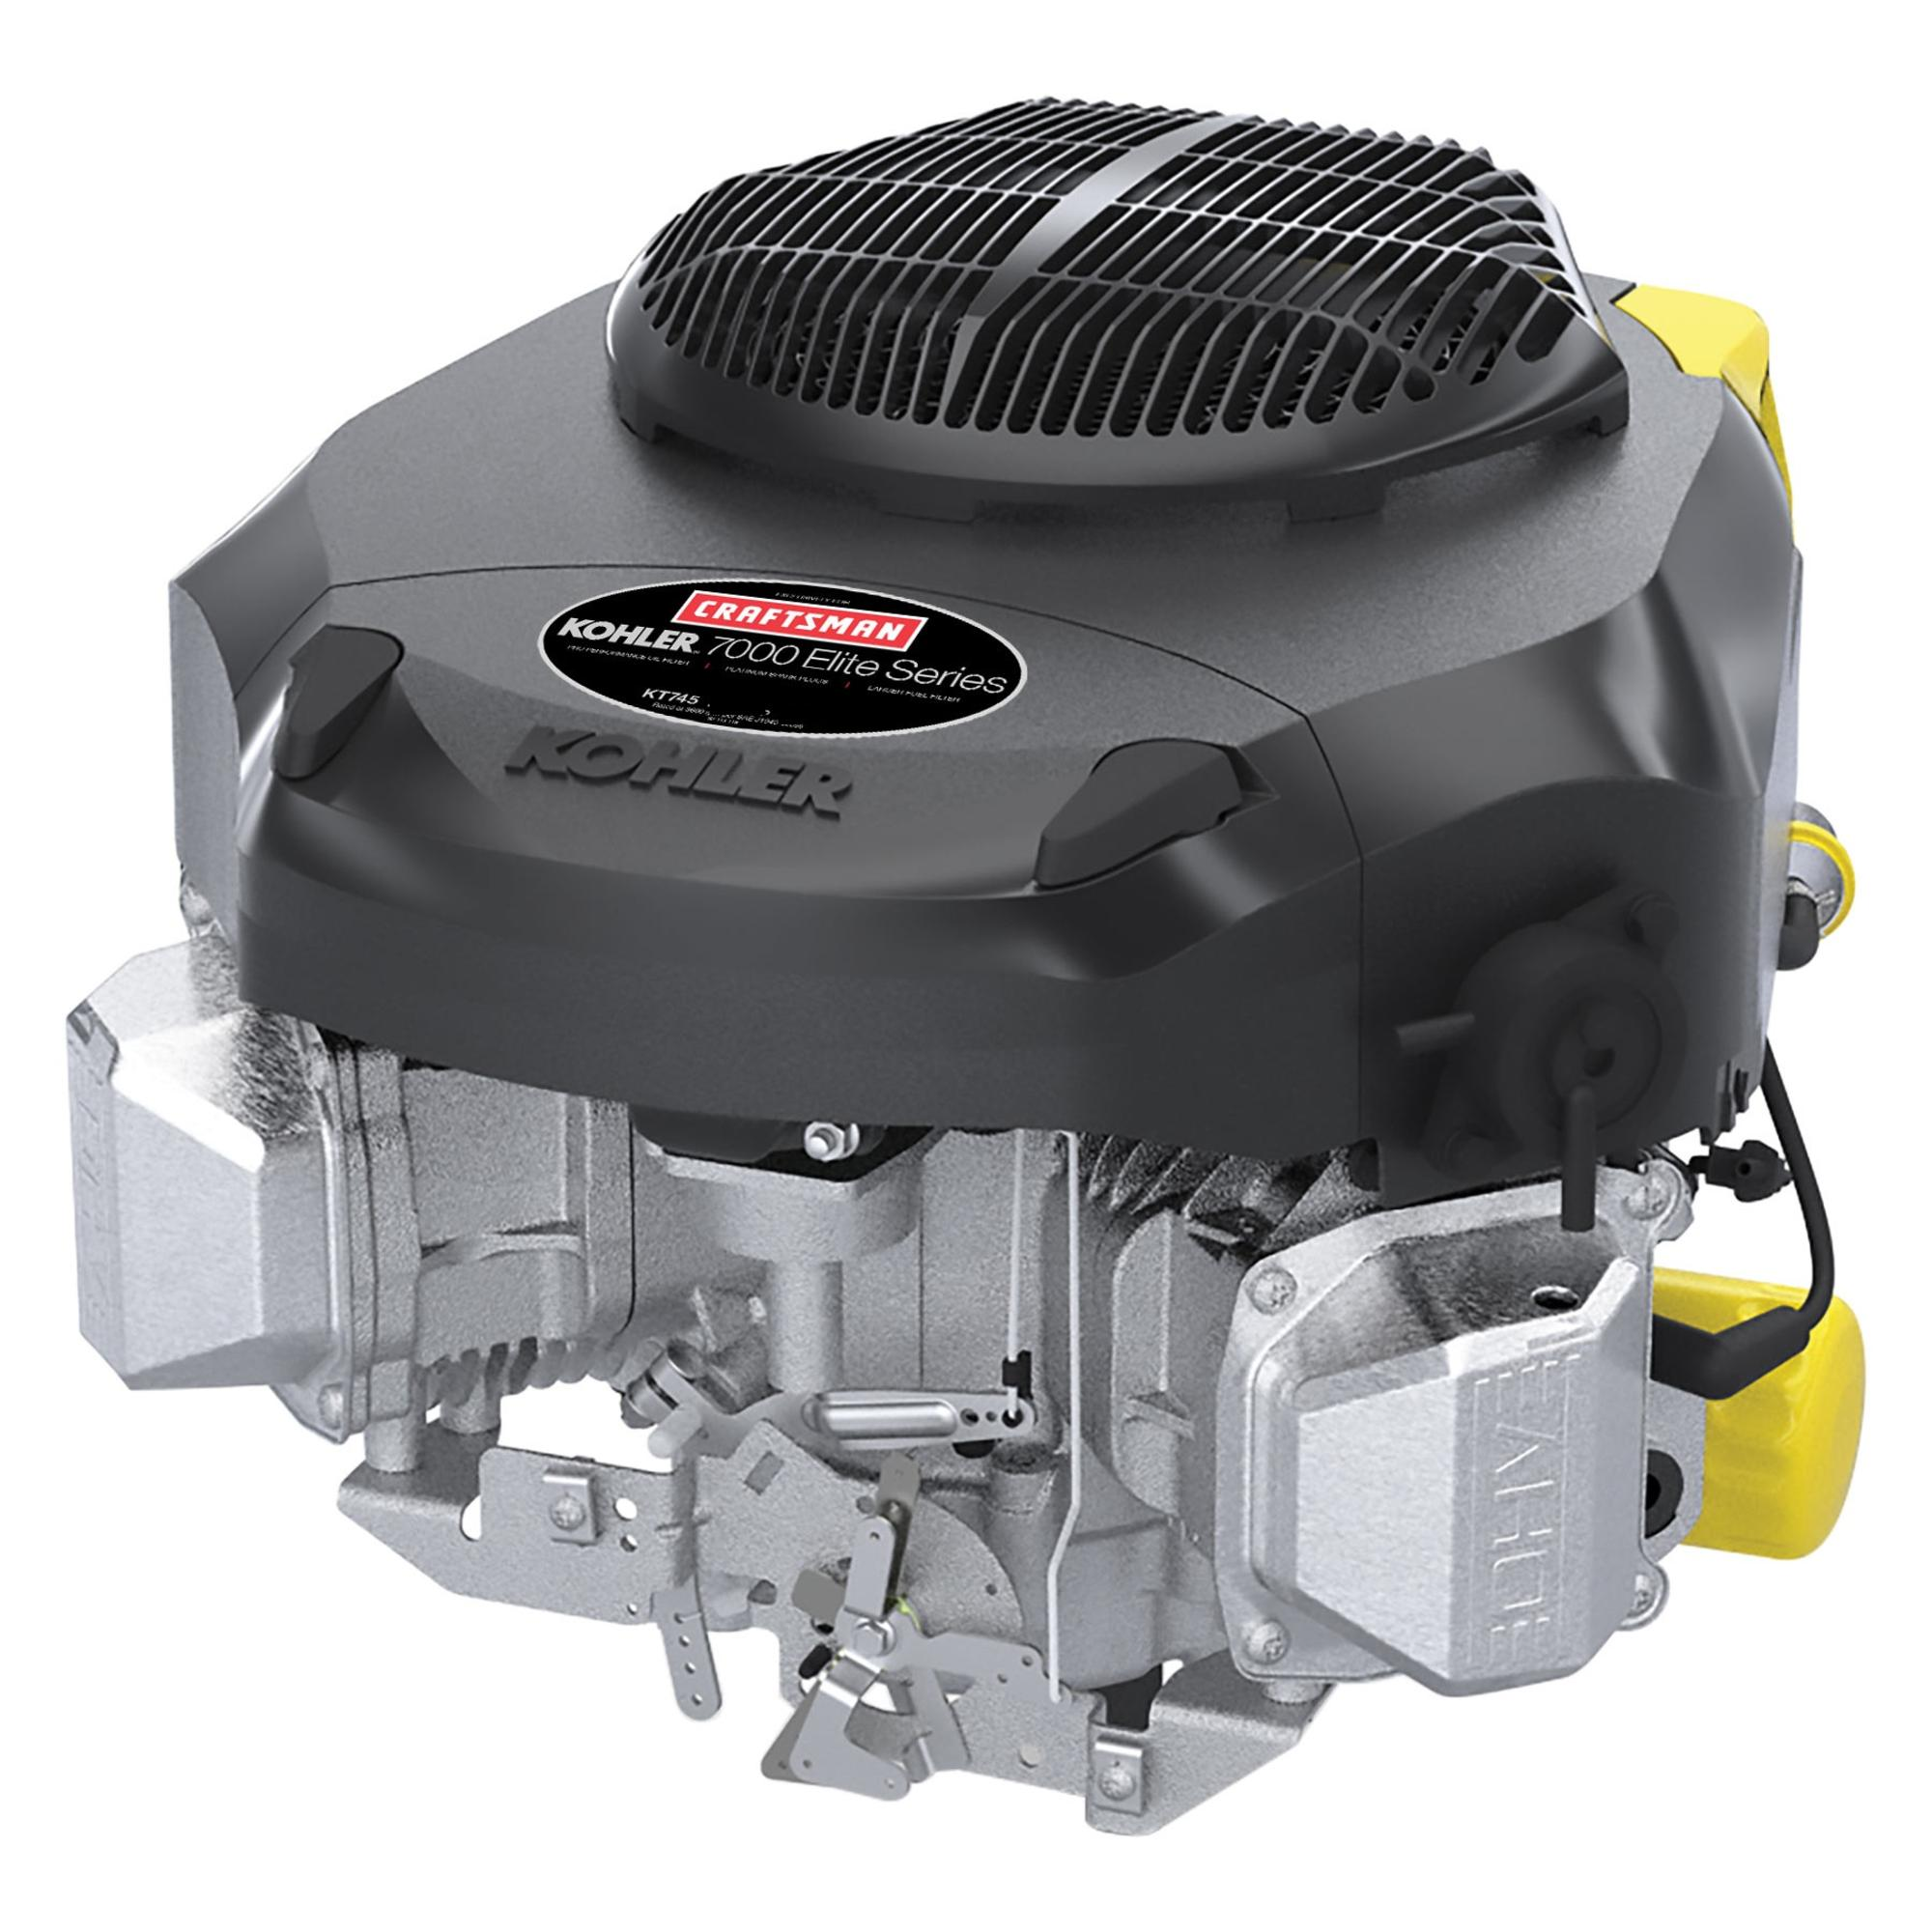 Kohler Engine In A Craftsman Lawn Tractor Trouble Fs5500 Wiring Diagram 2011 Yt 3000 42 Inch 21 Hp Model